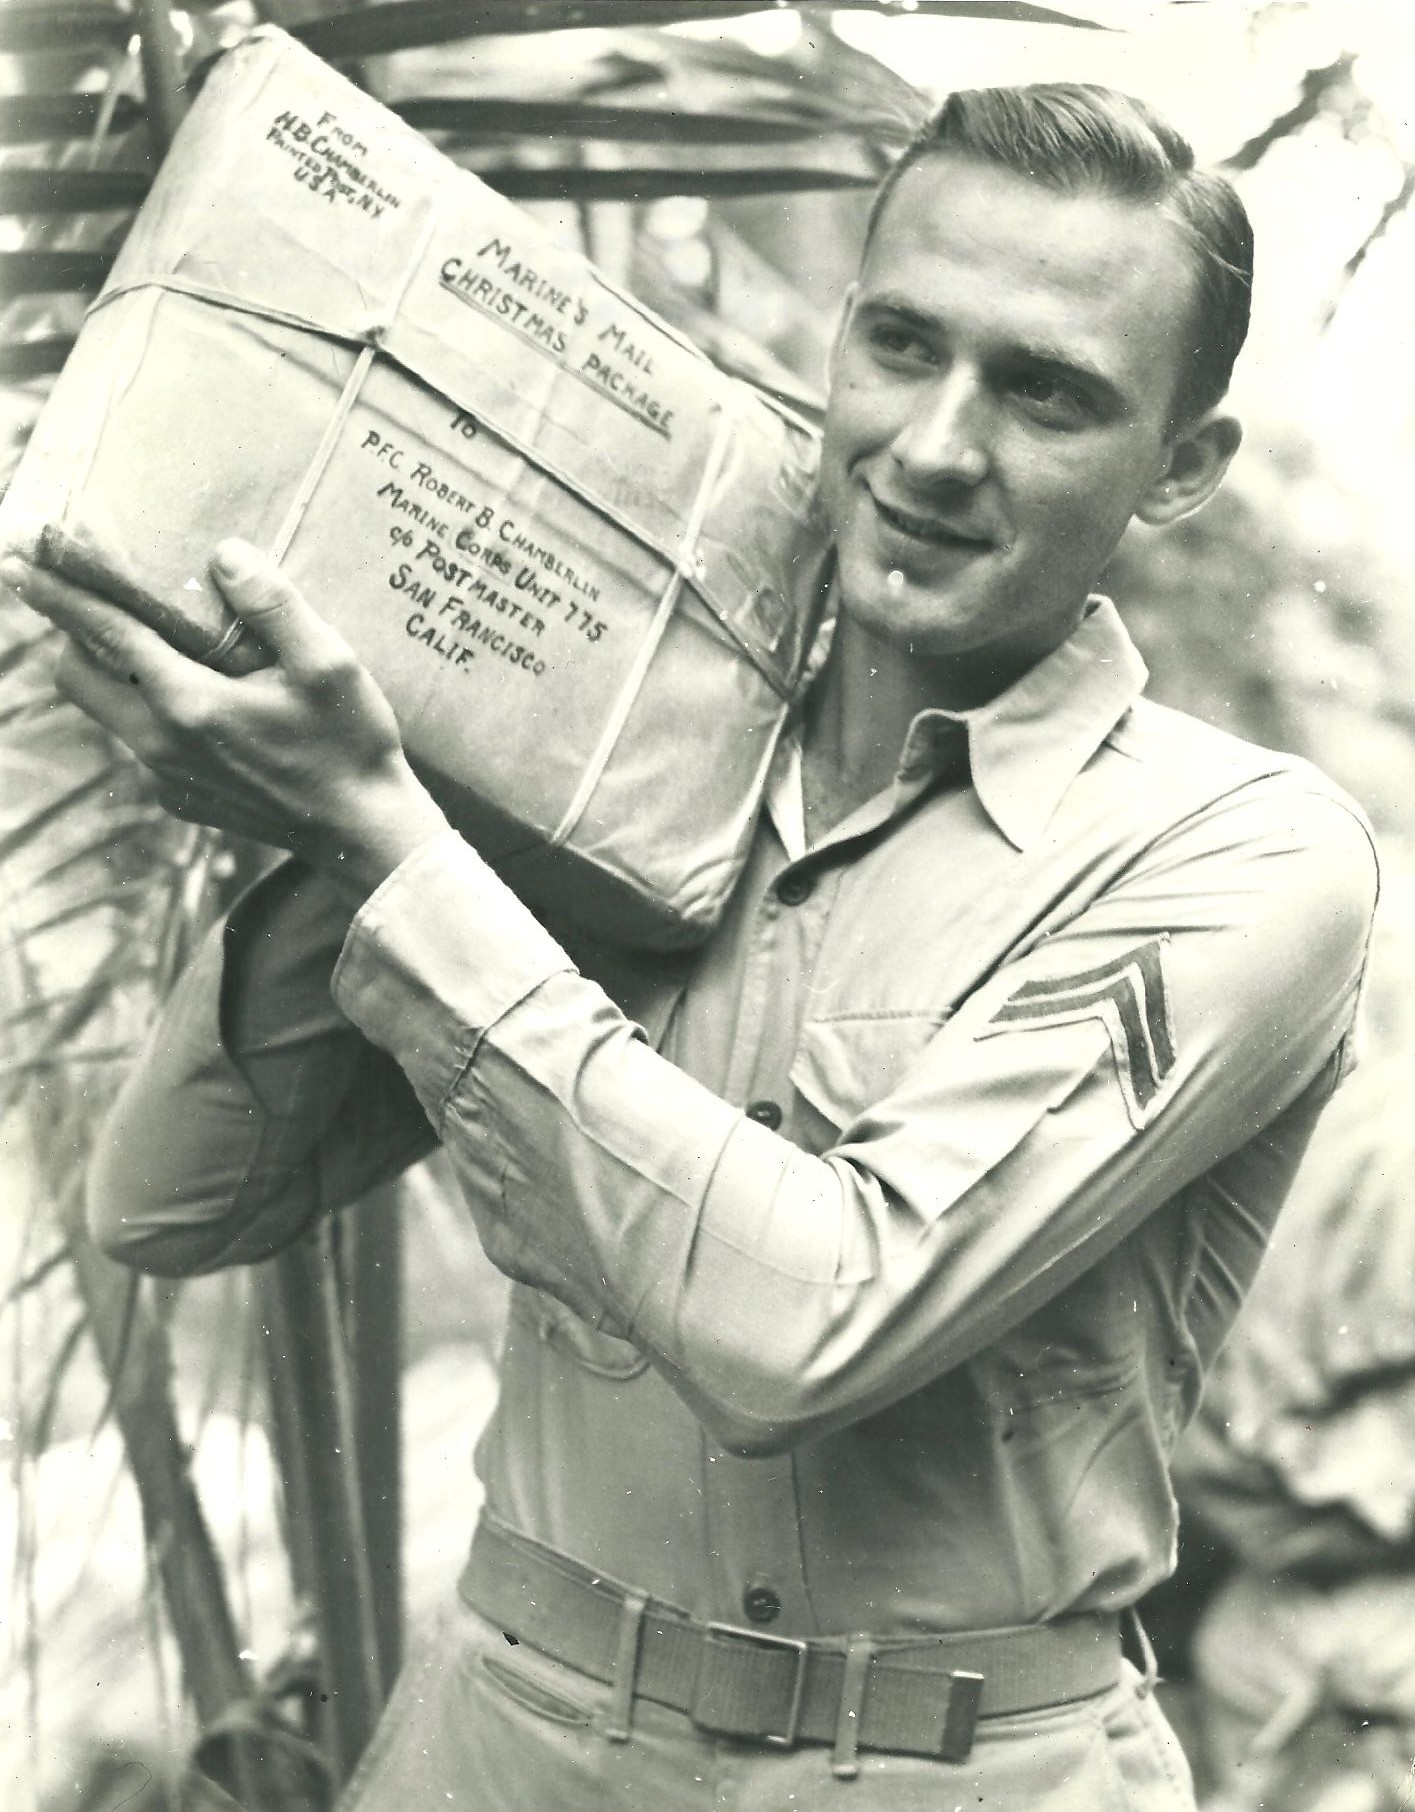 A Christmas package for happy Corporal Robert B. Chamberlin, member of a United States Marine Corps unit stationed in the southwestern Pacific. Christmas for this Marine Corps unit will lack the proverbial trimmings on this island of coconut palms and bananas, but packages and mail from home helped make up for that.